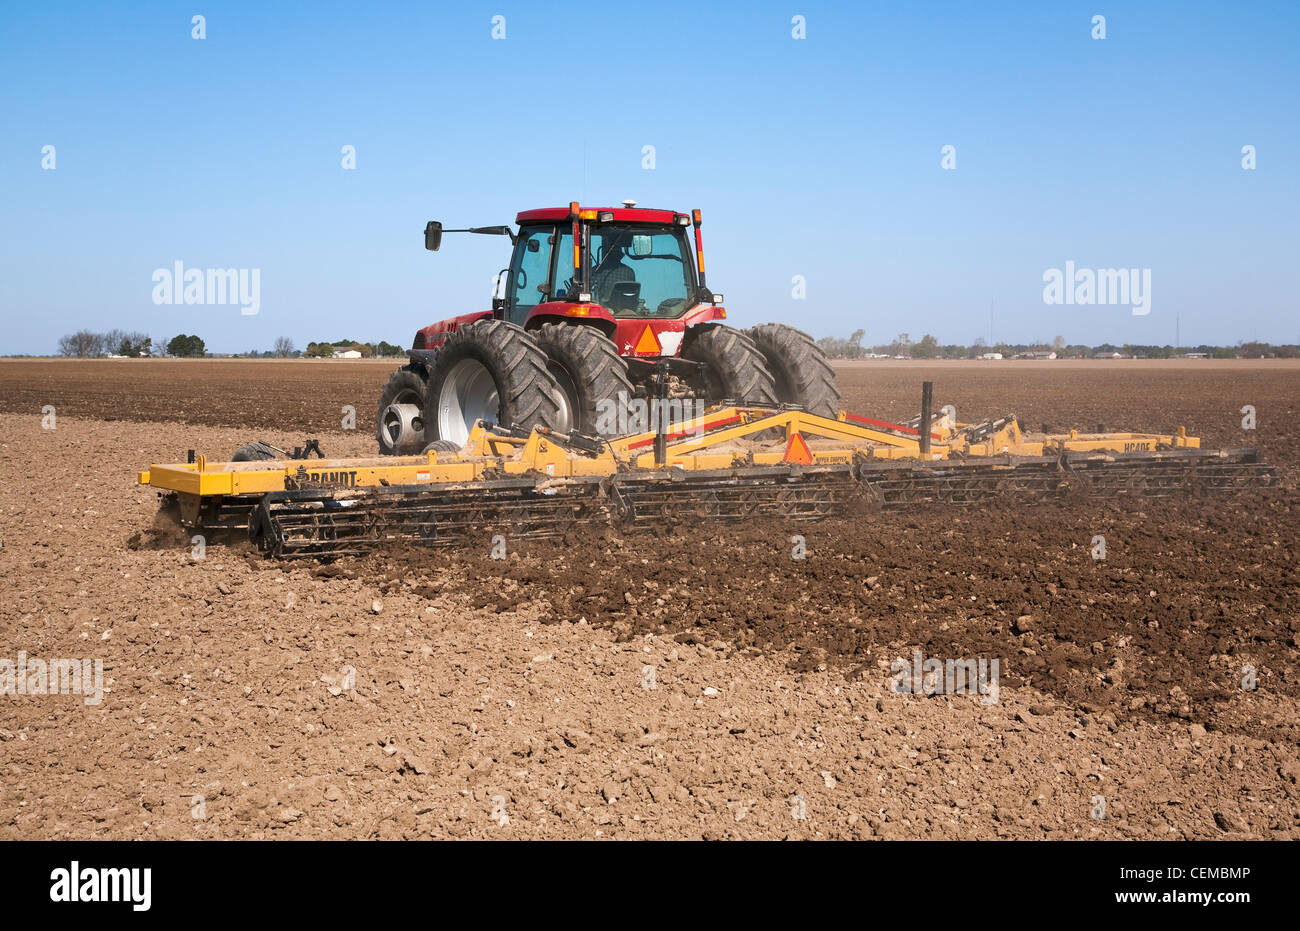 Case Tractor Posters : A case ih tractor and field implement prepare bedded soil